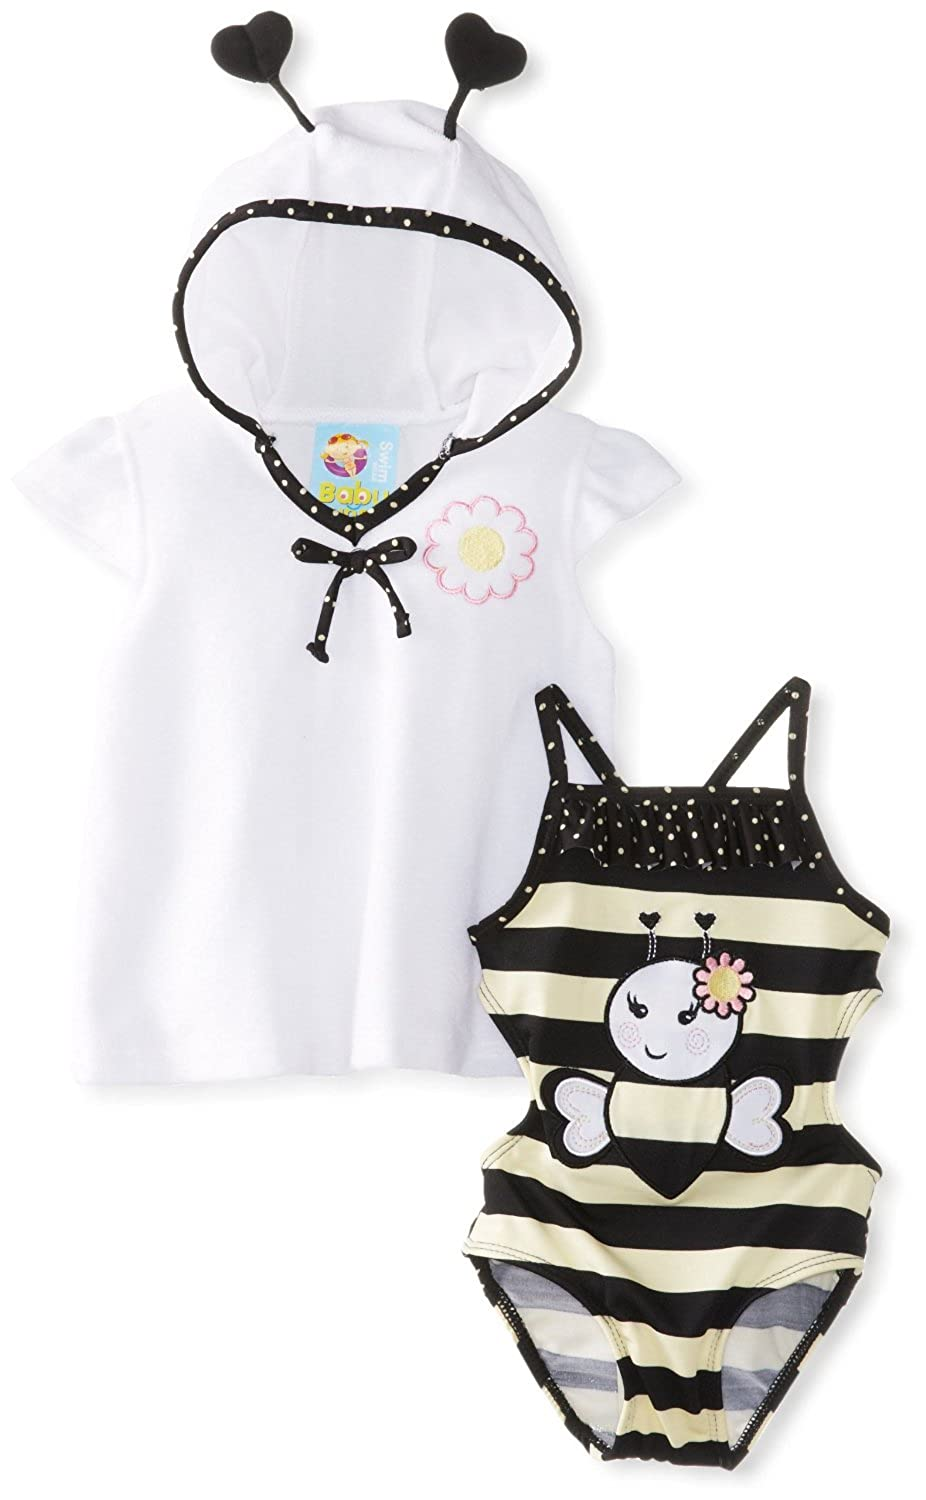 Baby Buns Girls' 1 Piece Swimsuit with Cover Up Bee U Tiful Flower